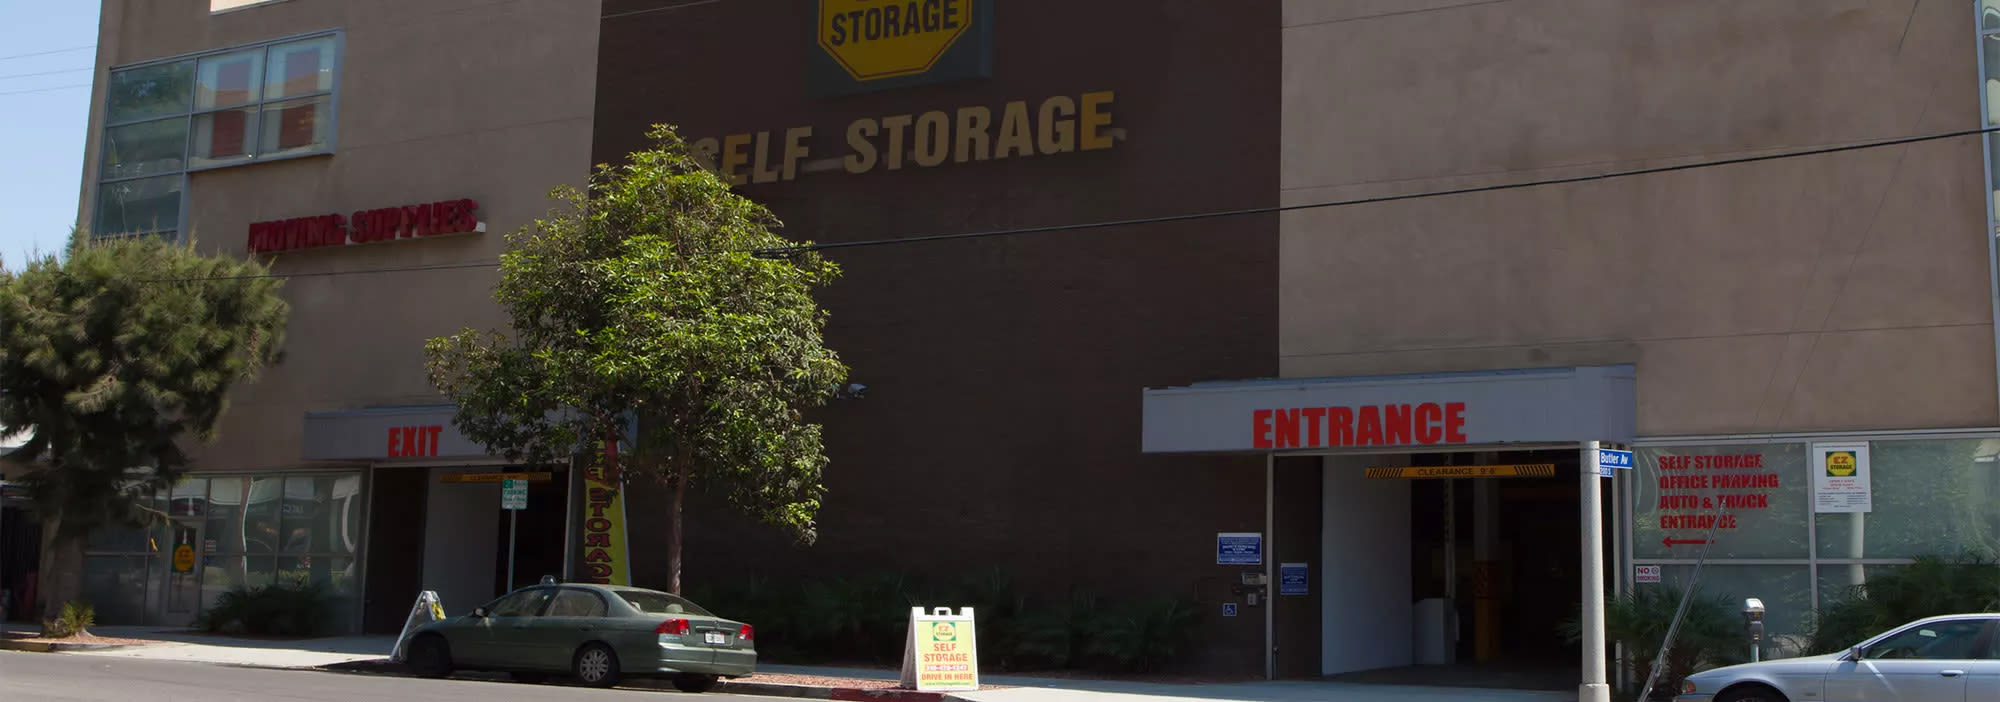 Self storage in Los Angeles CA